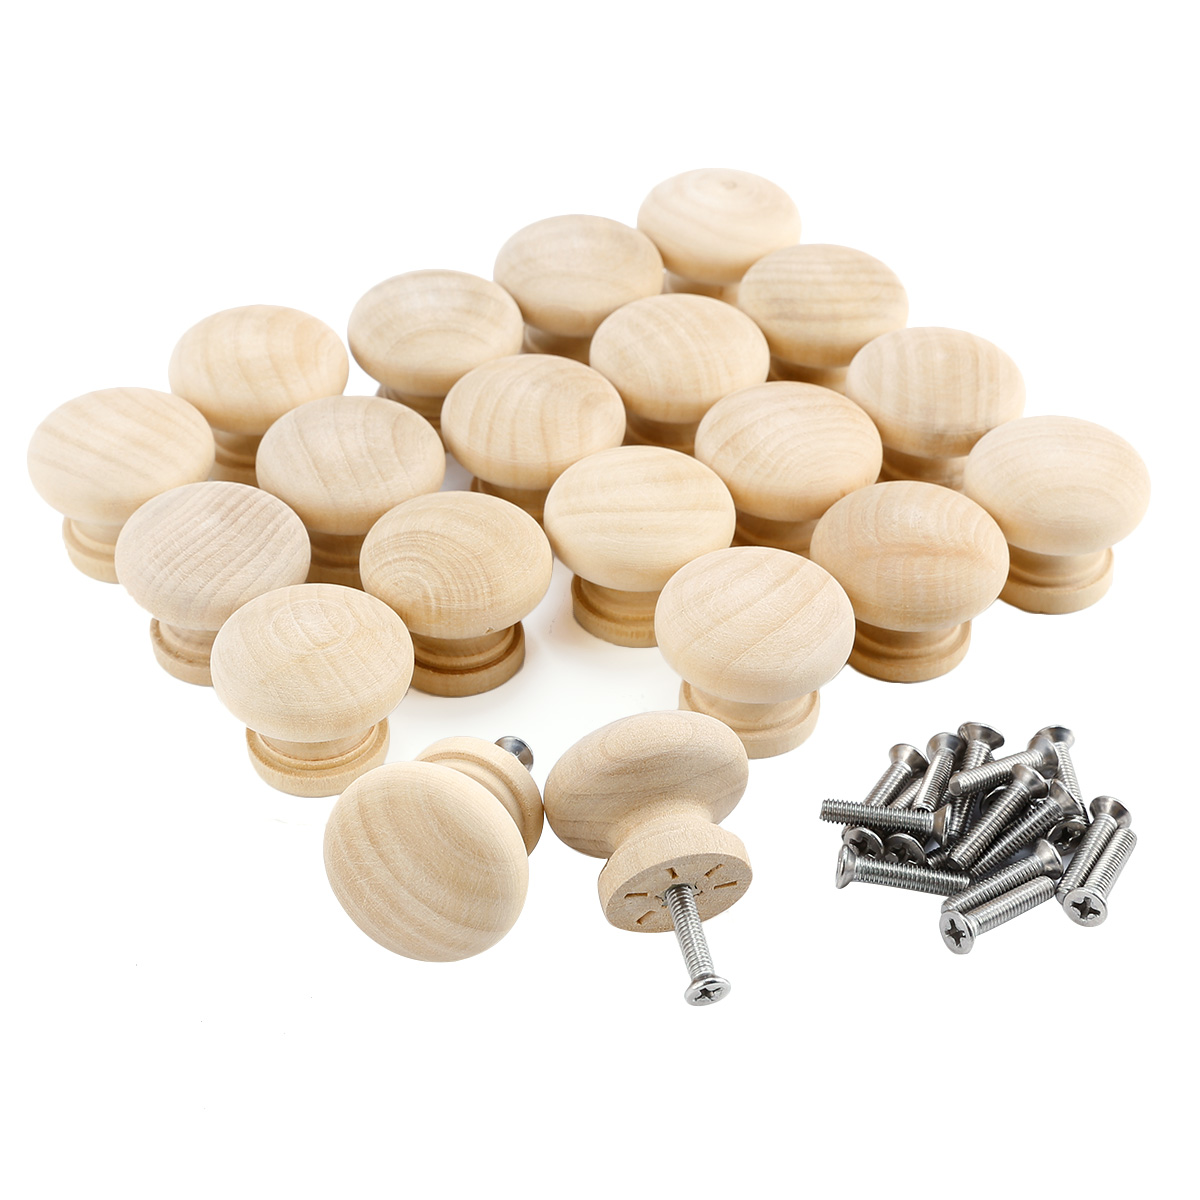 20 60x 32mm Round Wooden Cabinet Knob Cupboard Drawer